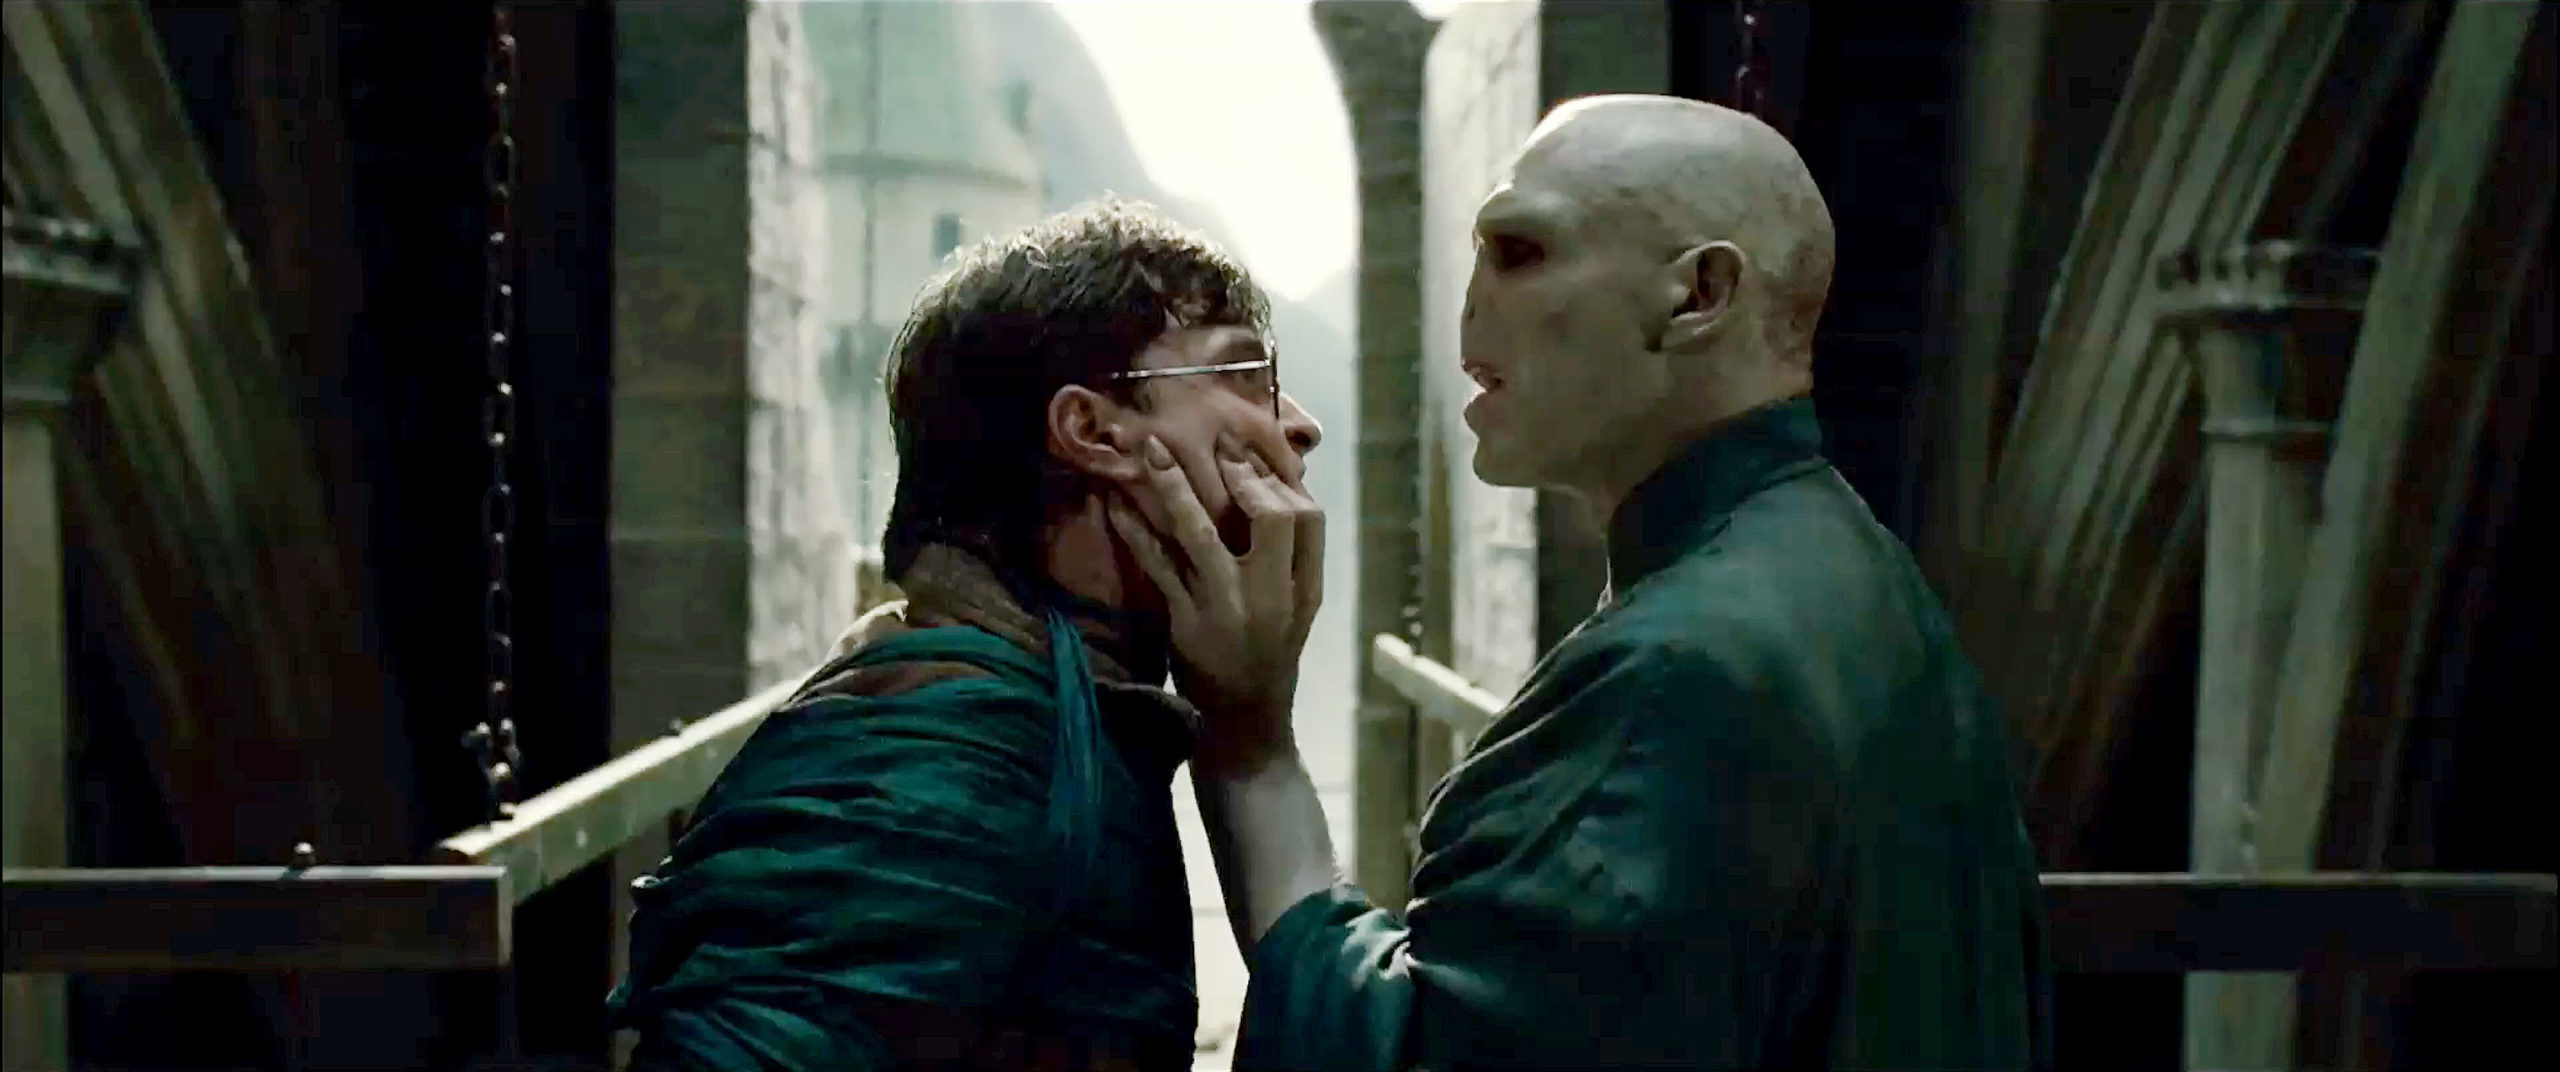 Digital Media World: Harry Potter and the Deathly Hallows Part 2 ...